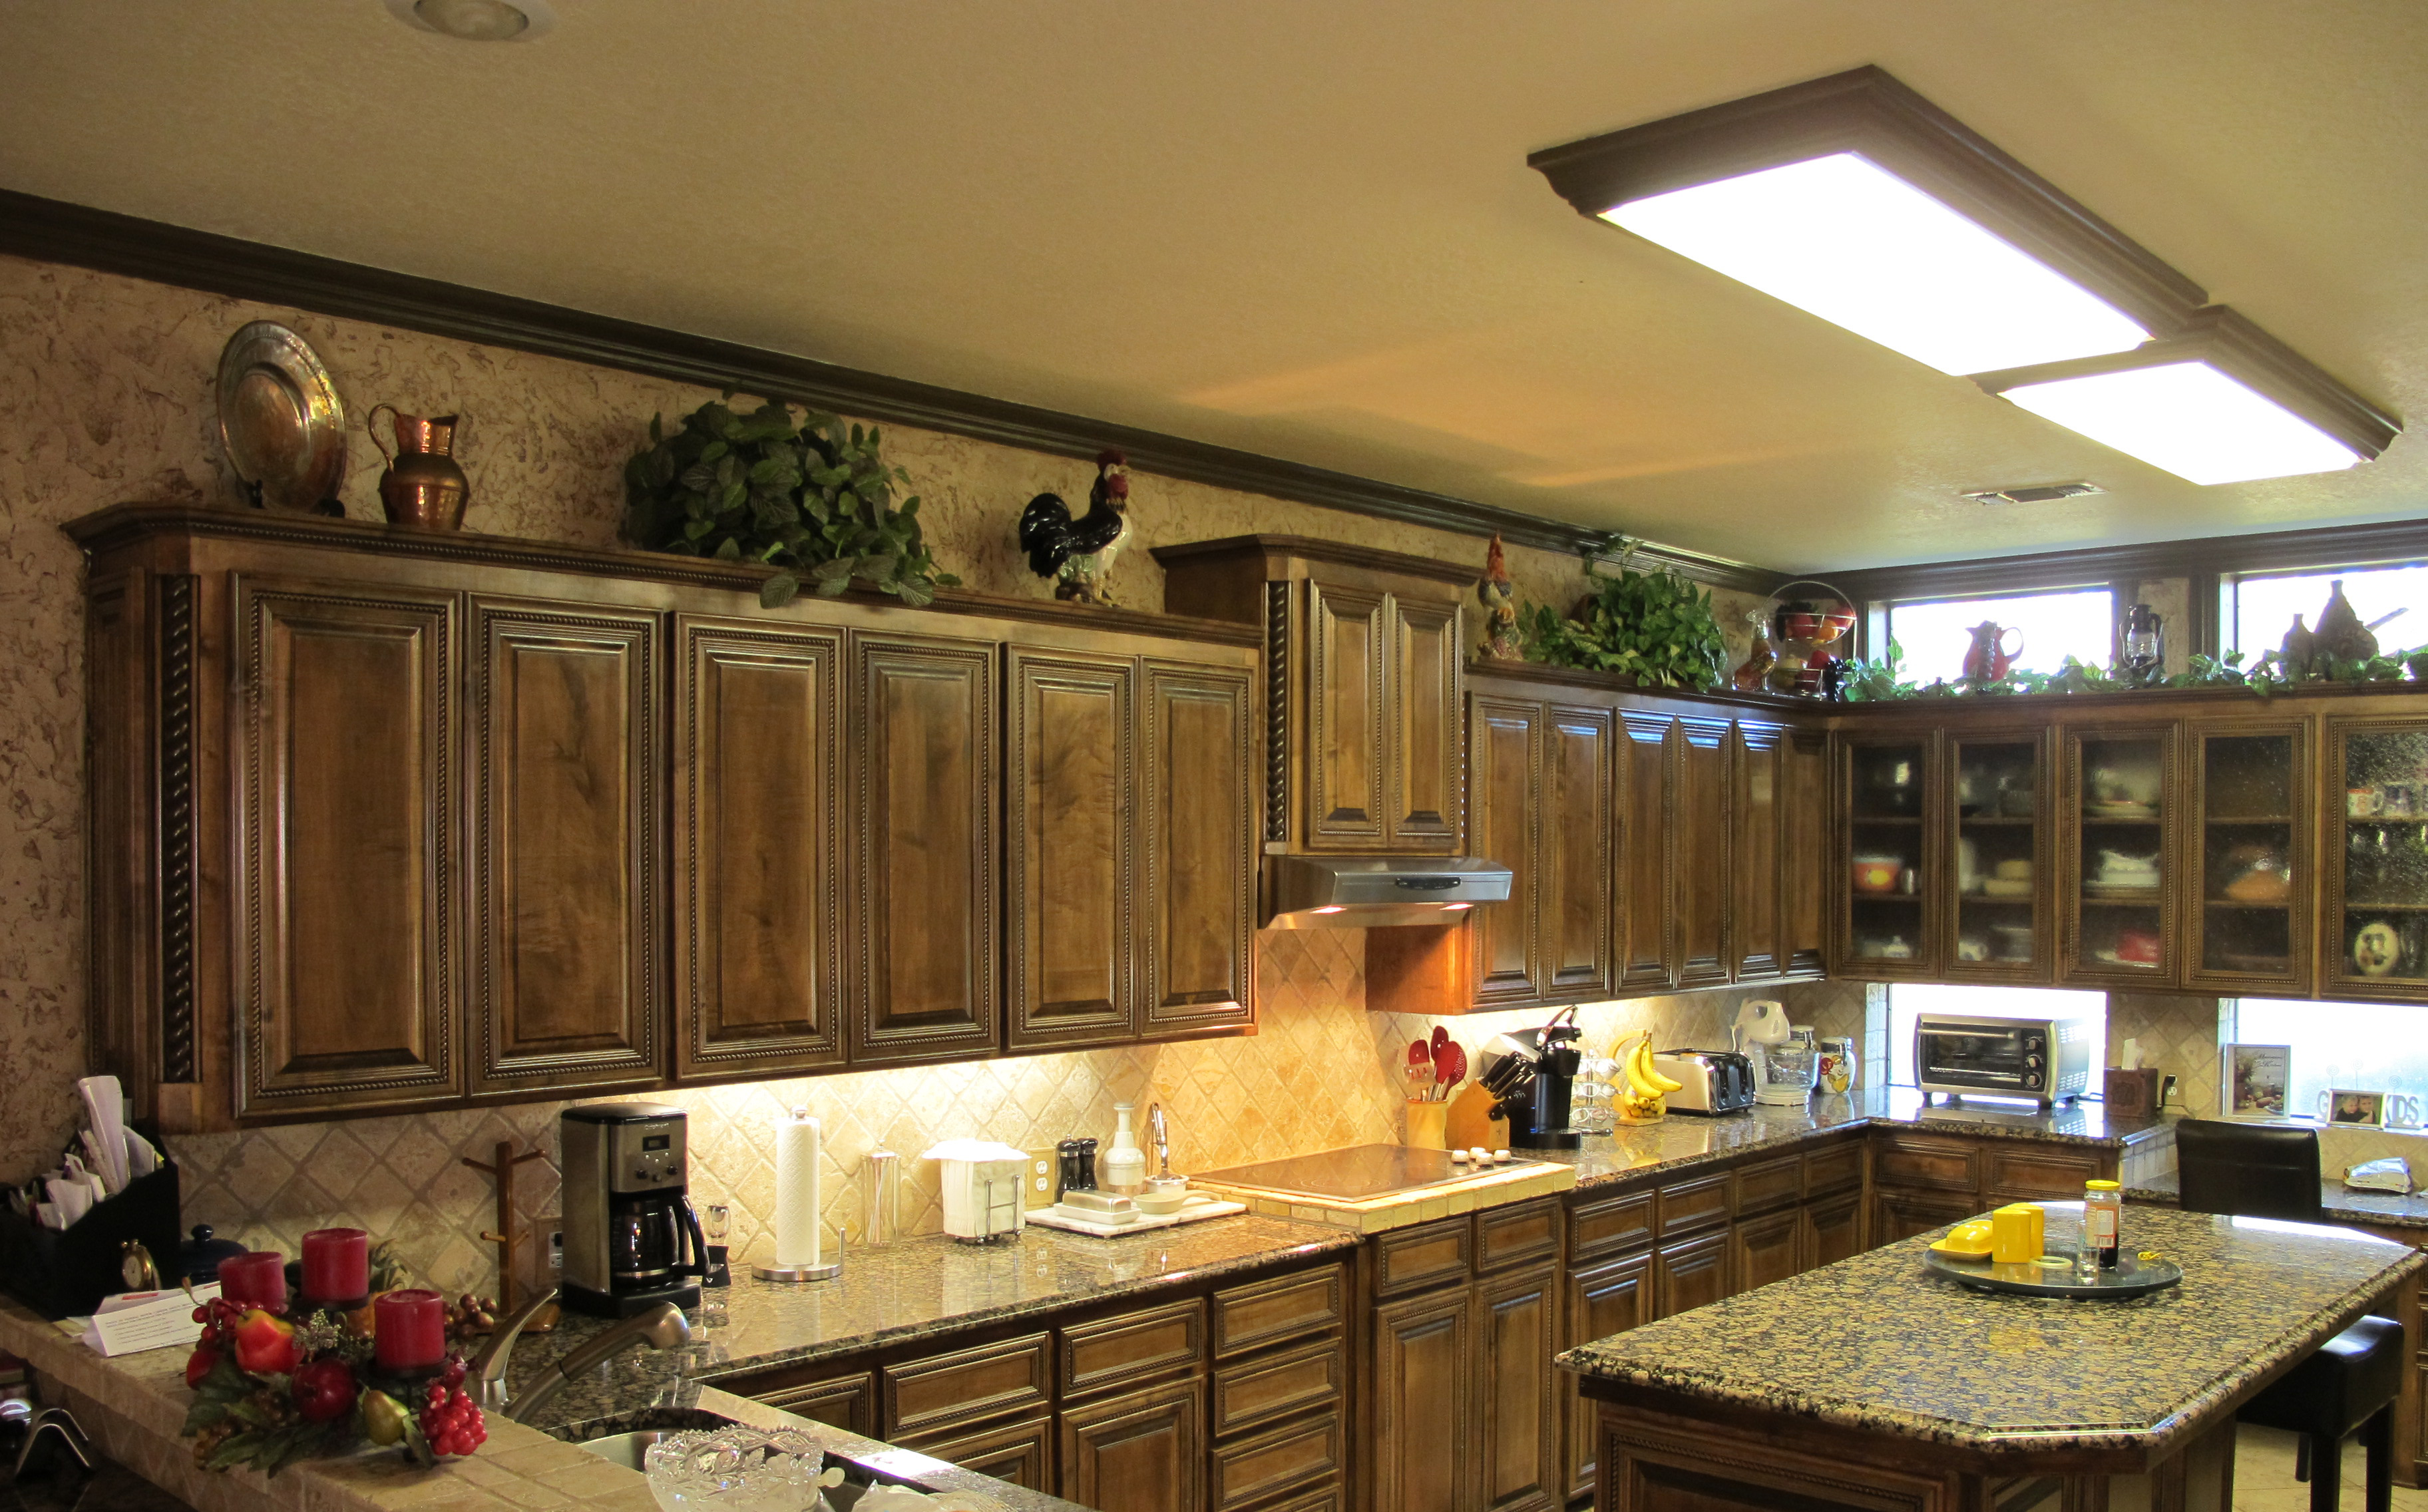 nice Decorative Accents For Kitchen #2: Kitchen Cabinet Decorative Accents